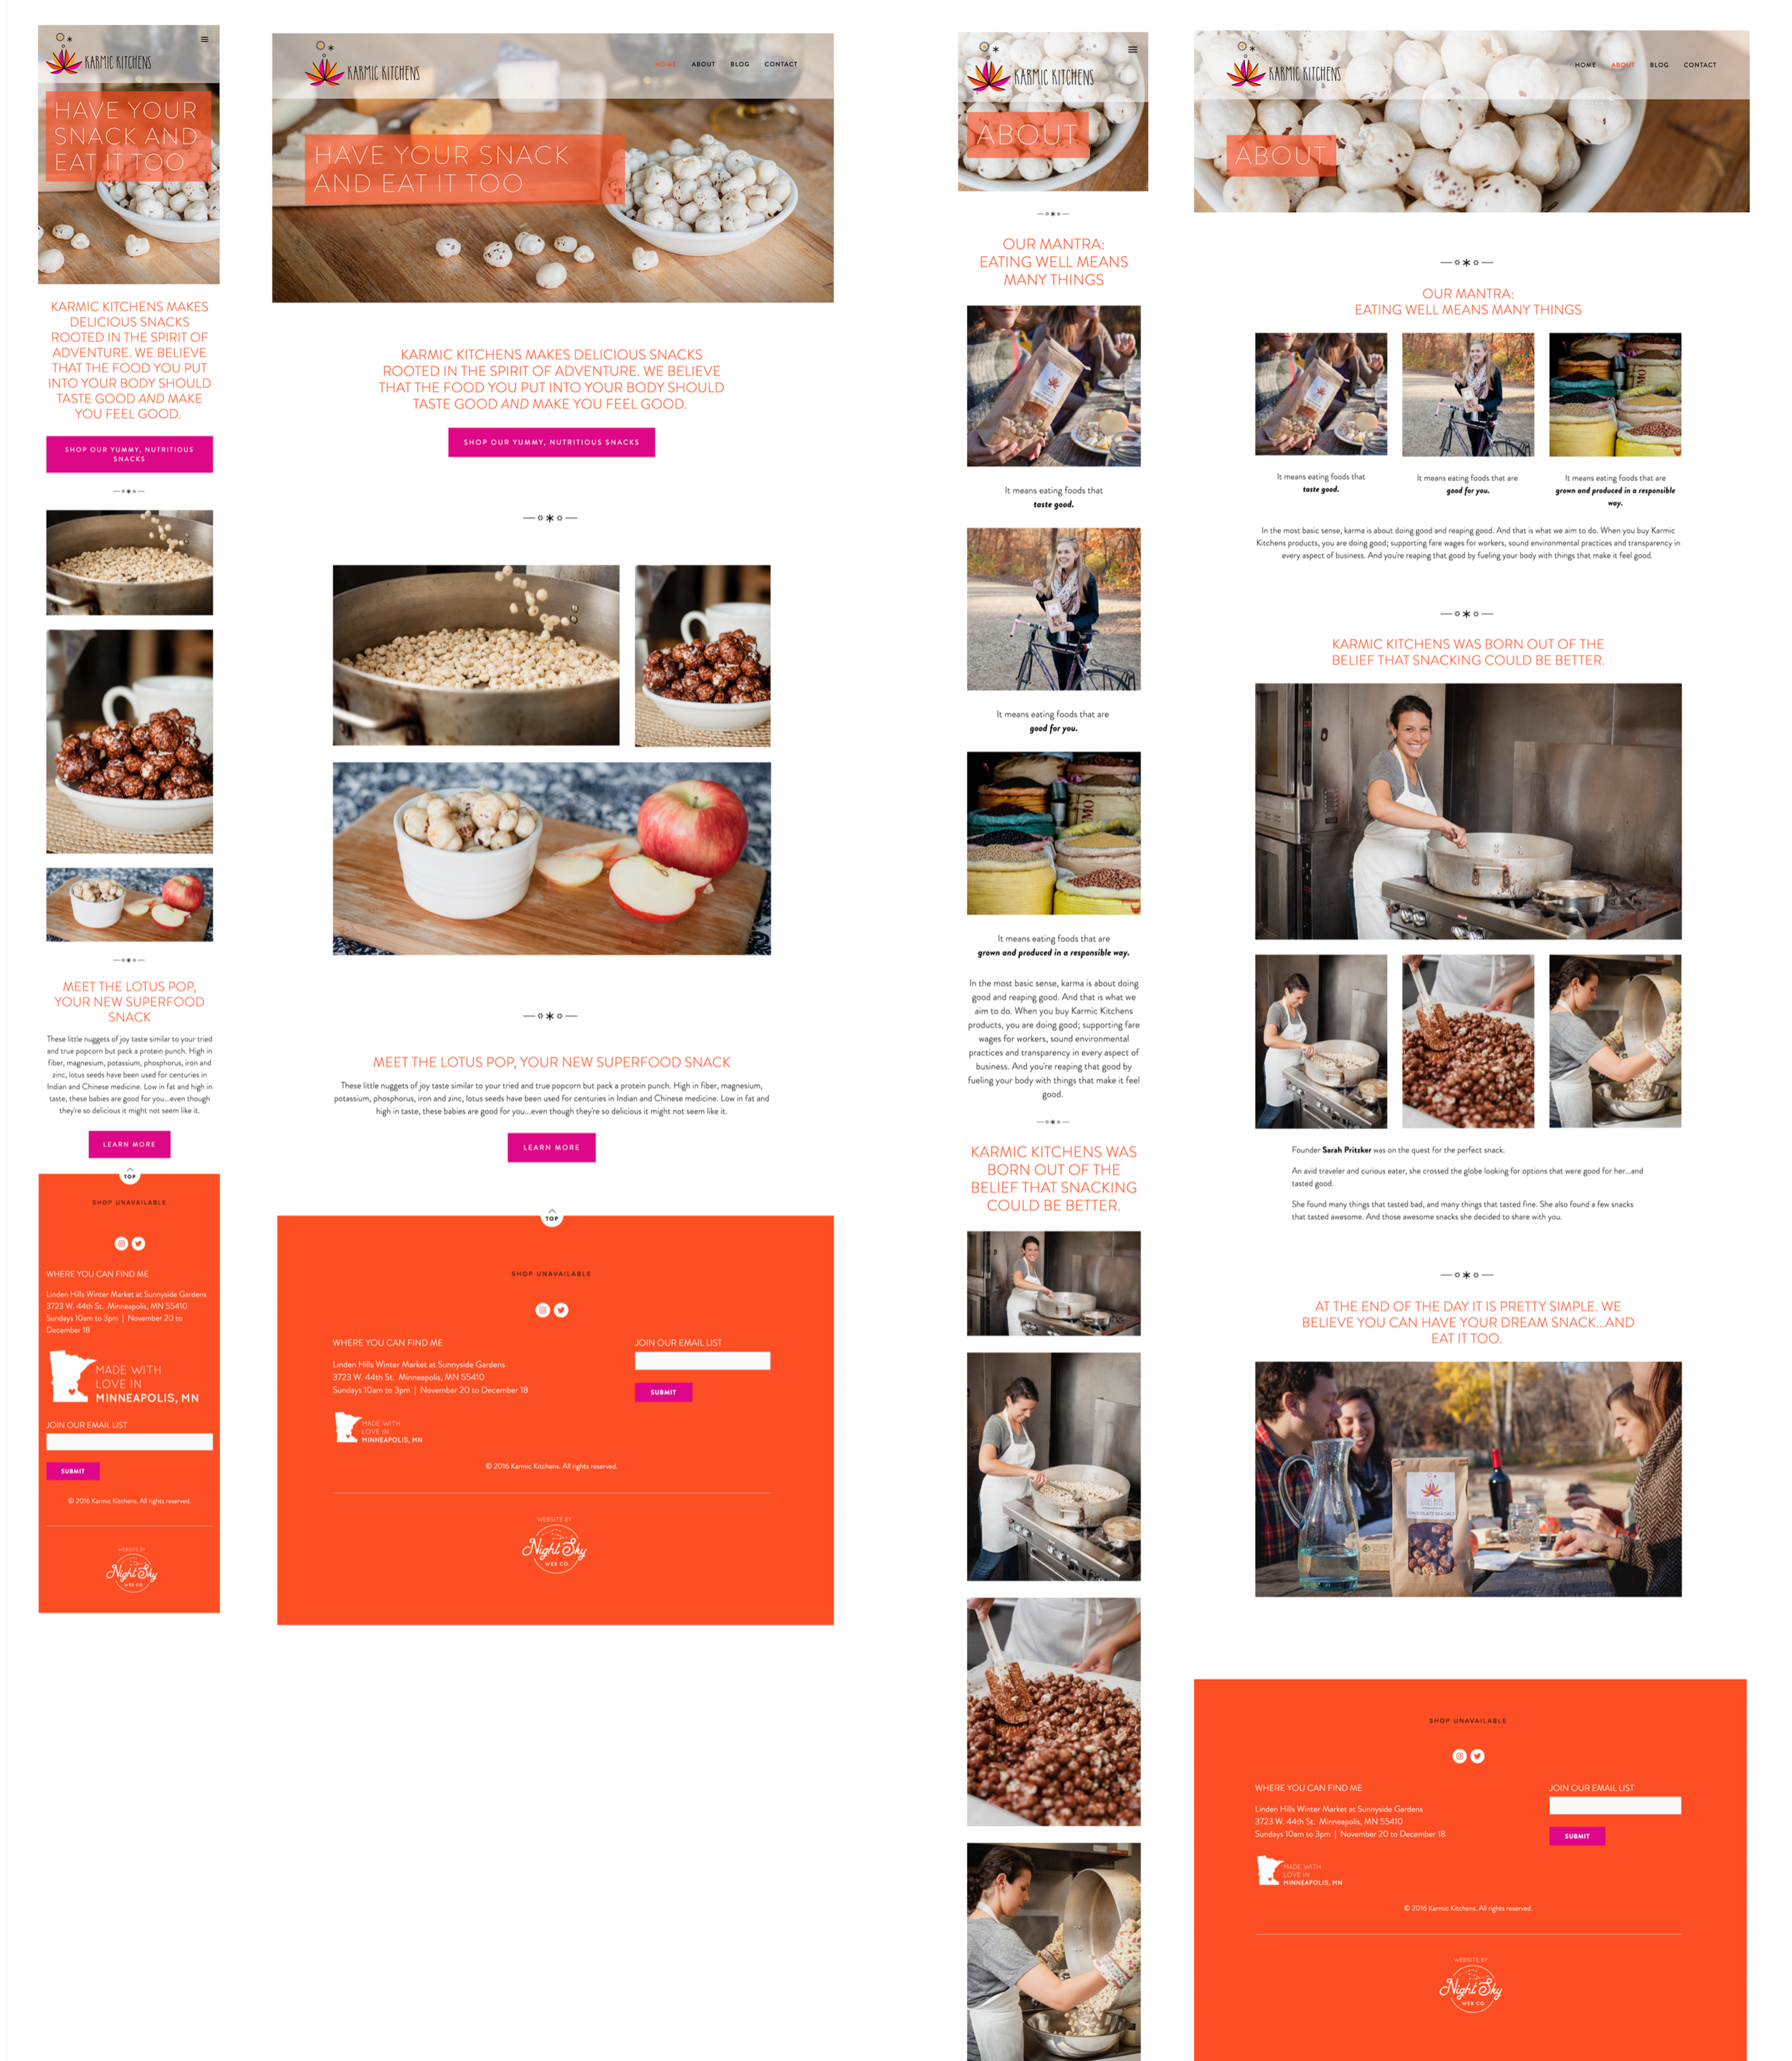 Karmic Kitchens Small & Large View UI Designs